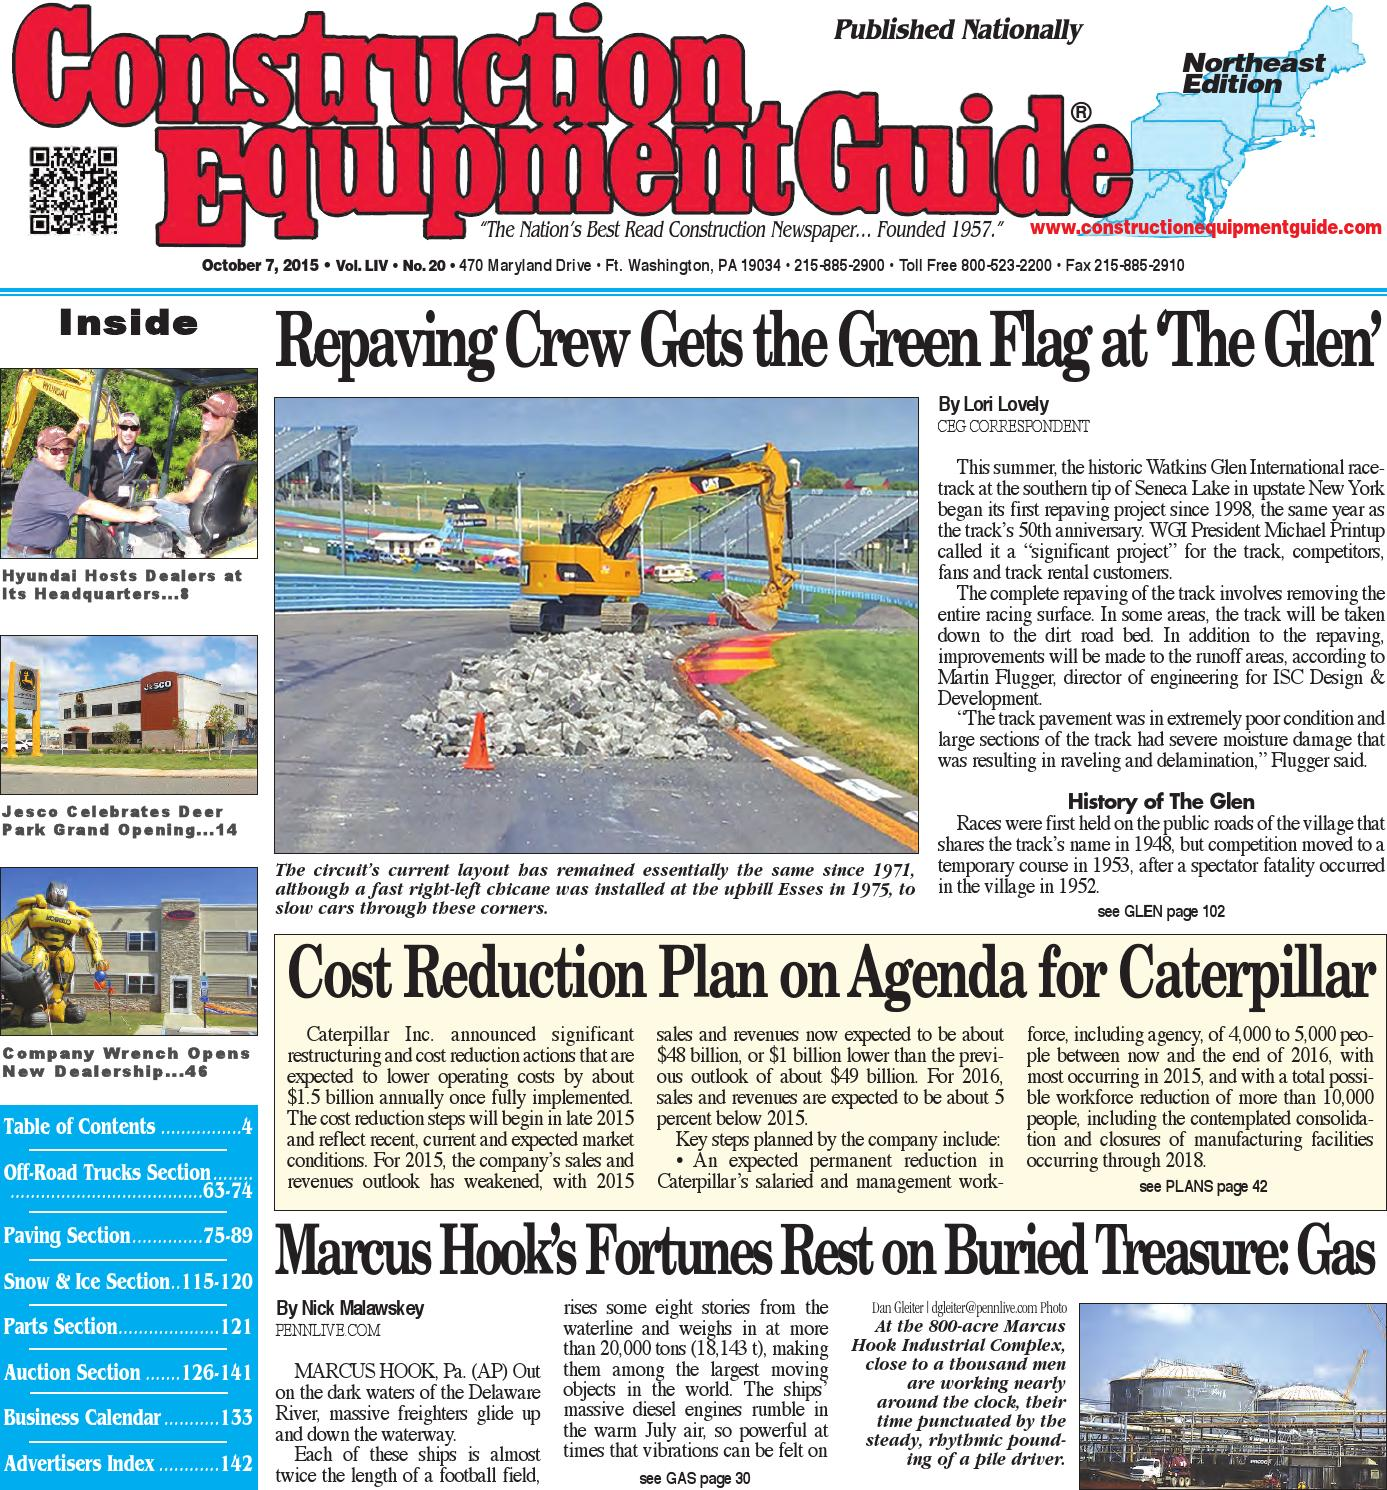 Northeast 20 2015 by Construction Equipment Guide - issuu